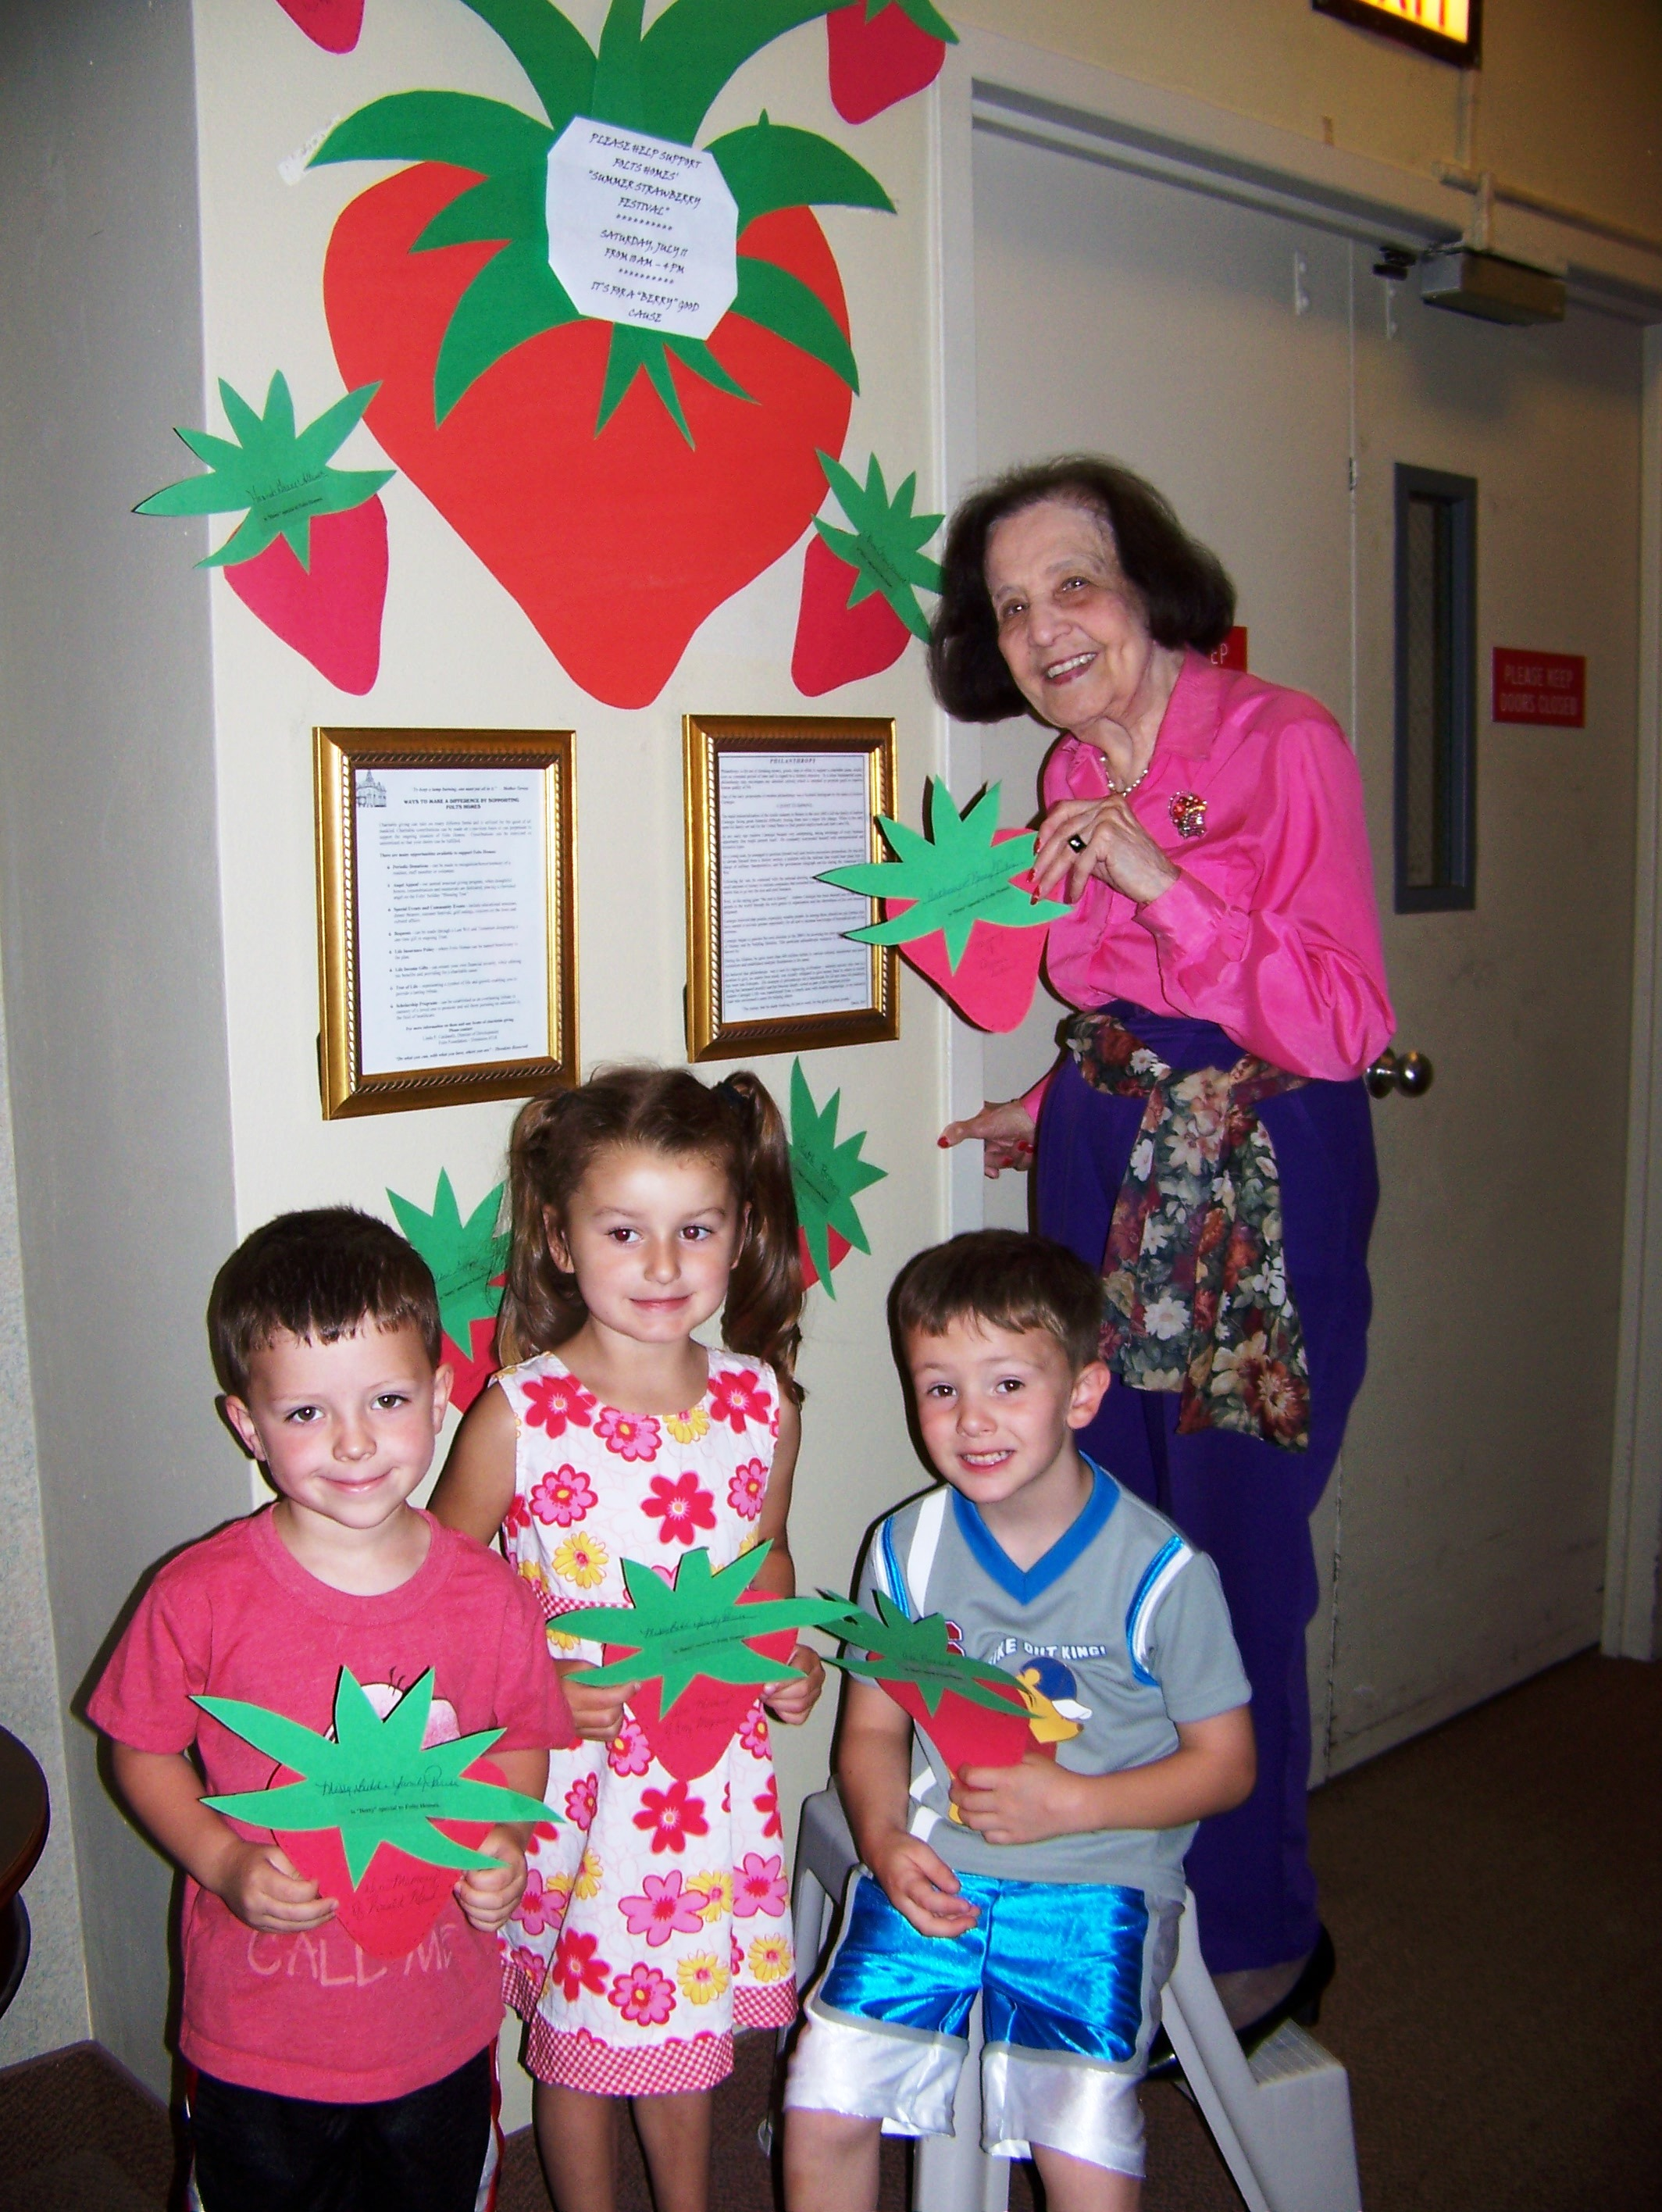 Shown decorating Folts Homes for the upcoming �Summer Strawberry Festival� are children from the Child Daycare Center, from left, Trey Dillion, Lauren Jory and Quintin Miller with Claxton Manor resident Ida Guzzo, who organized a paper strawberry sale in support of the event